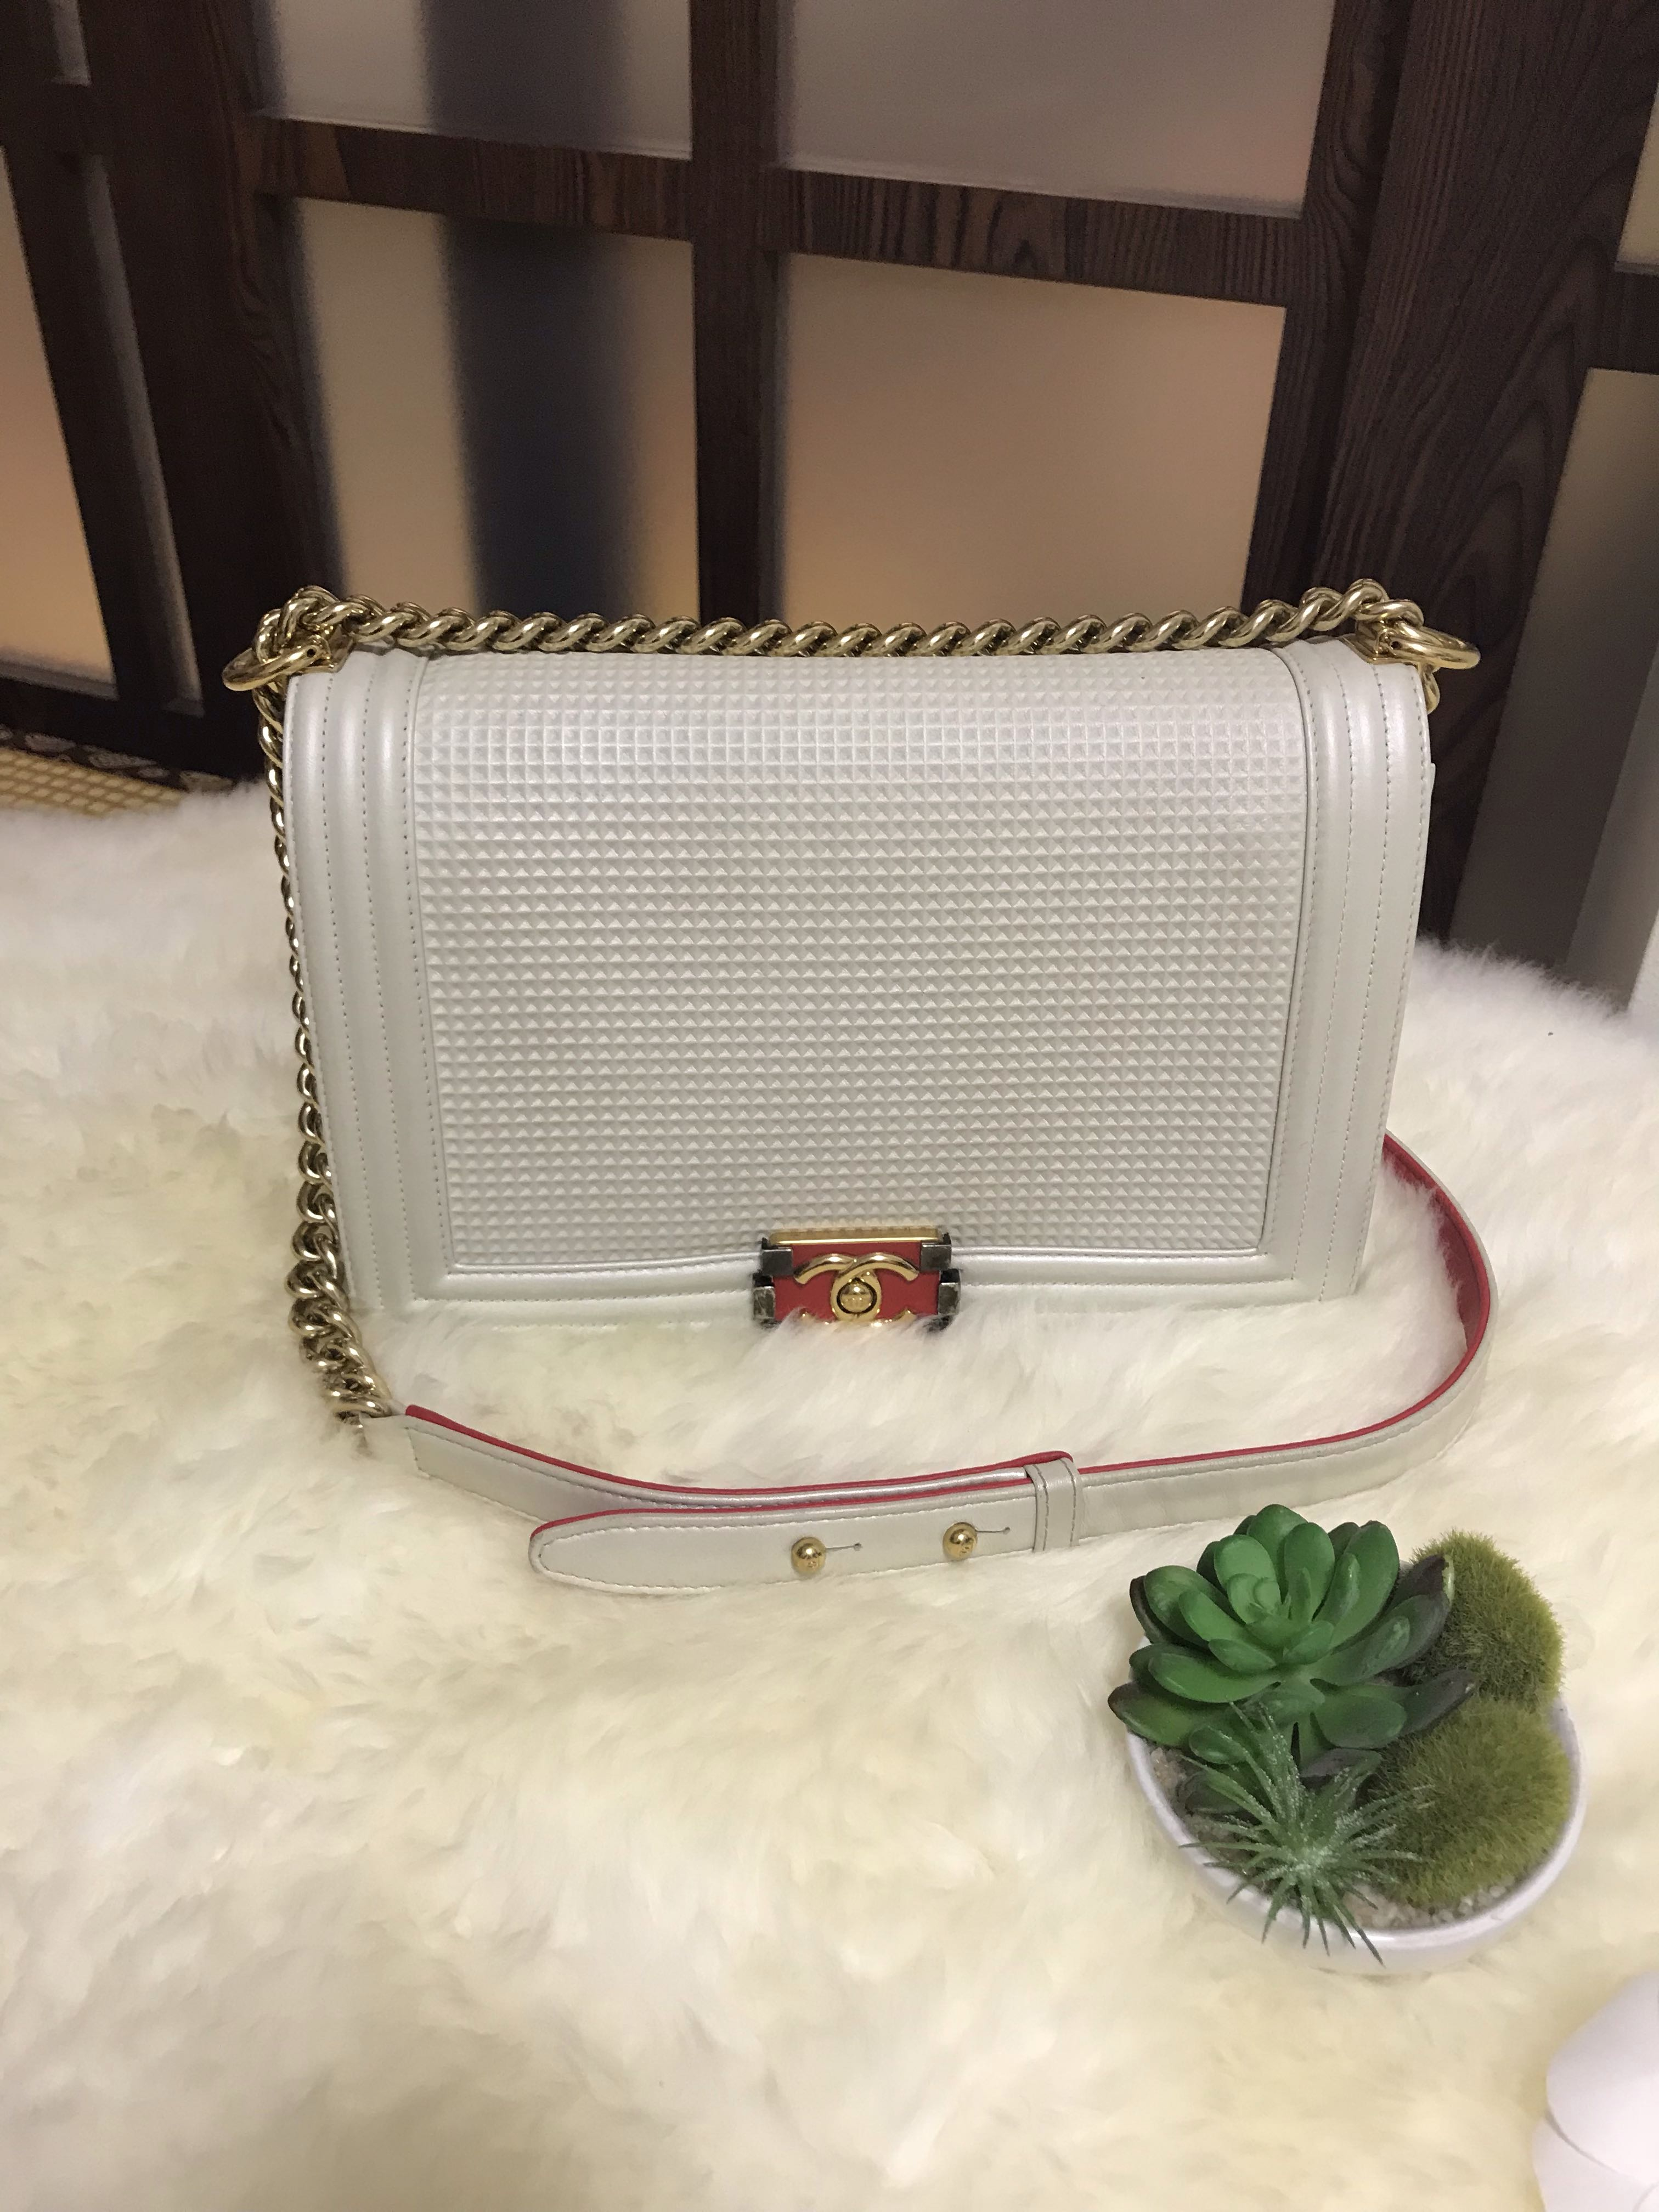 04dcd400a601 Superb Deal✨Chanel Cube Boy New Medium Metallic White Embossed with Ghw,  Luxury, Bags & Wallets, Handbags on Carousell